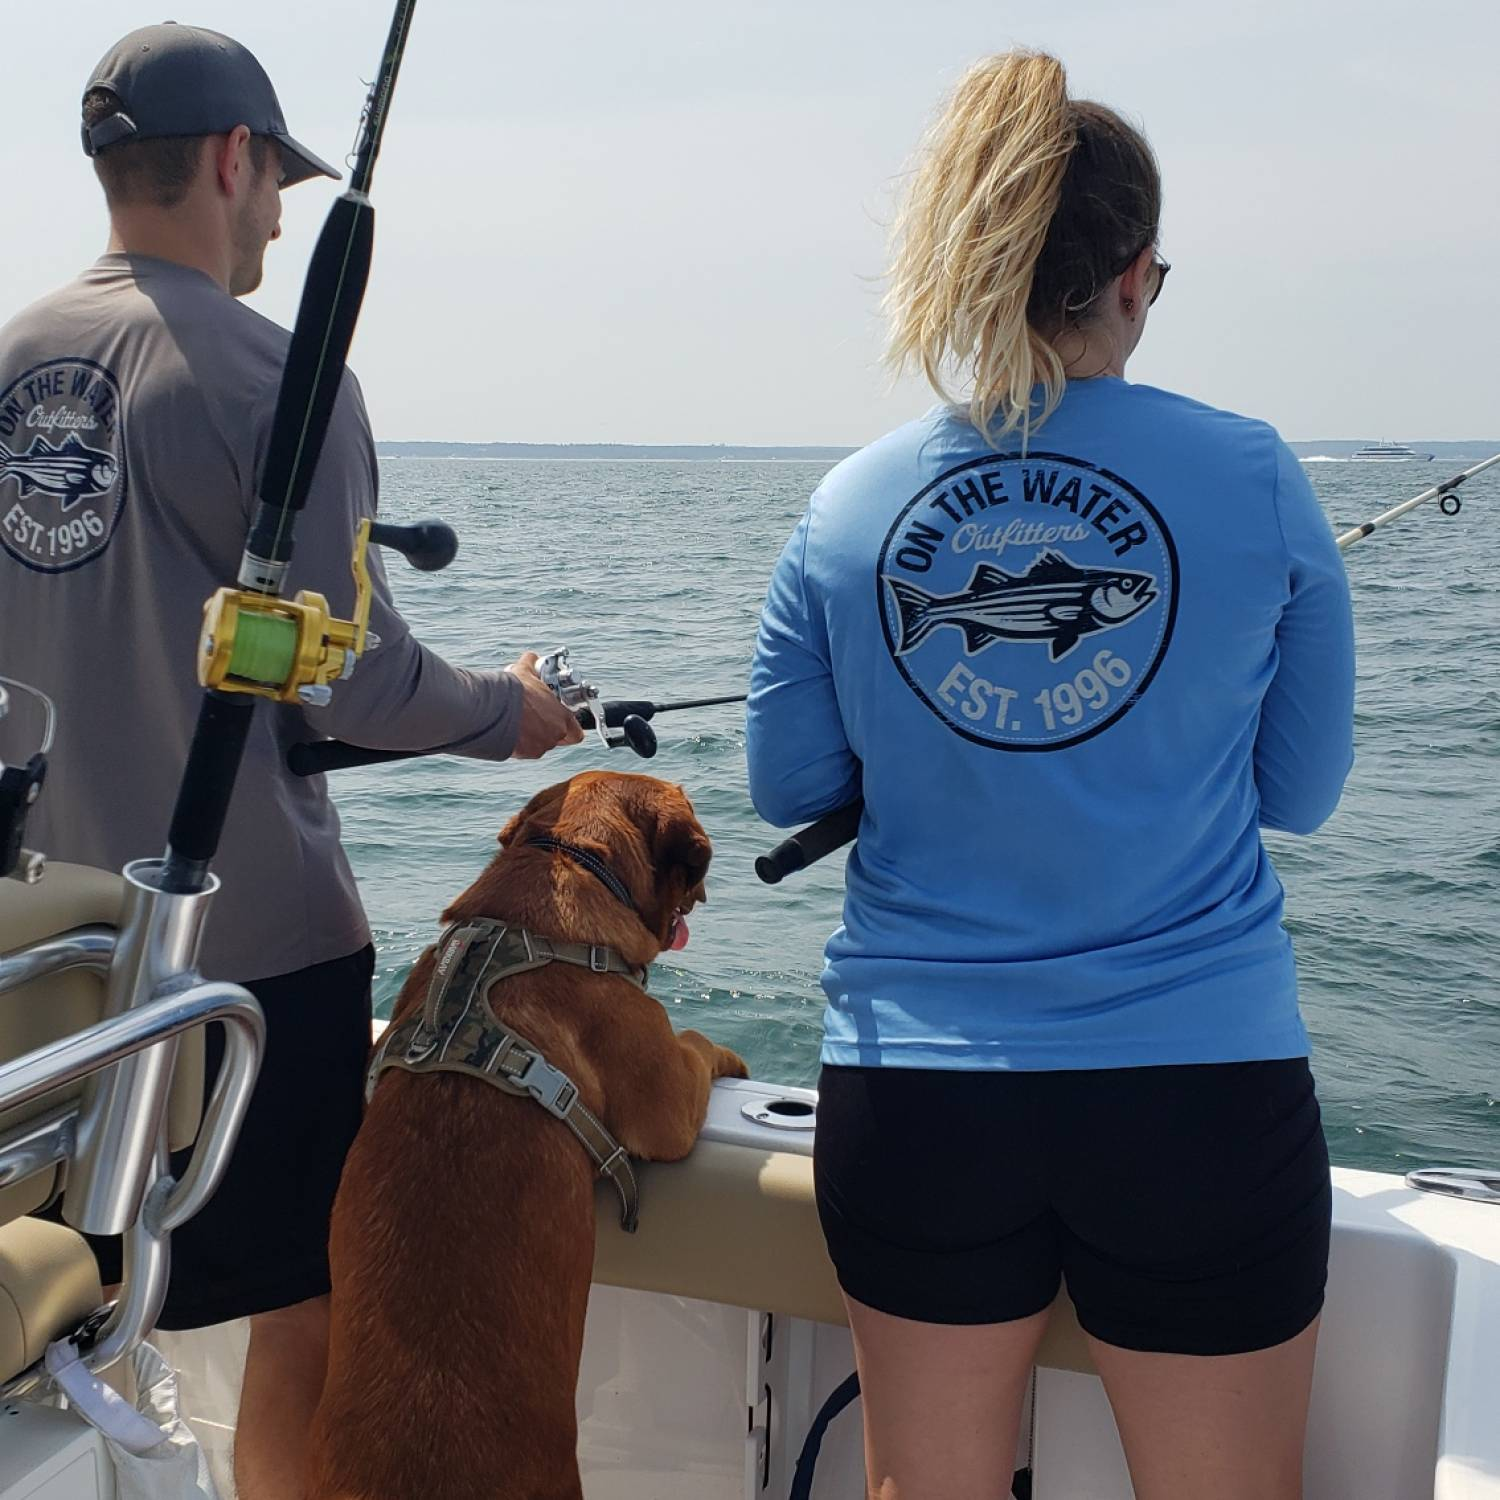 A day of fishing with the family, Brody our Lab loves the boat too!